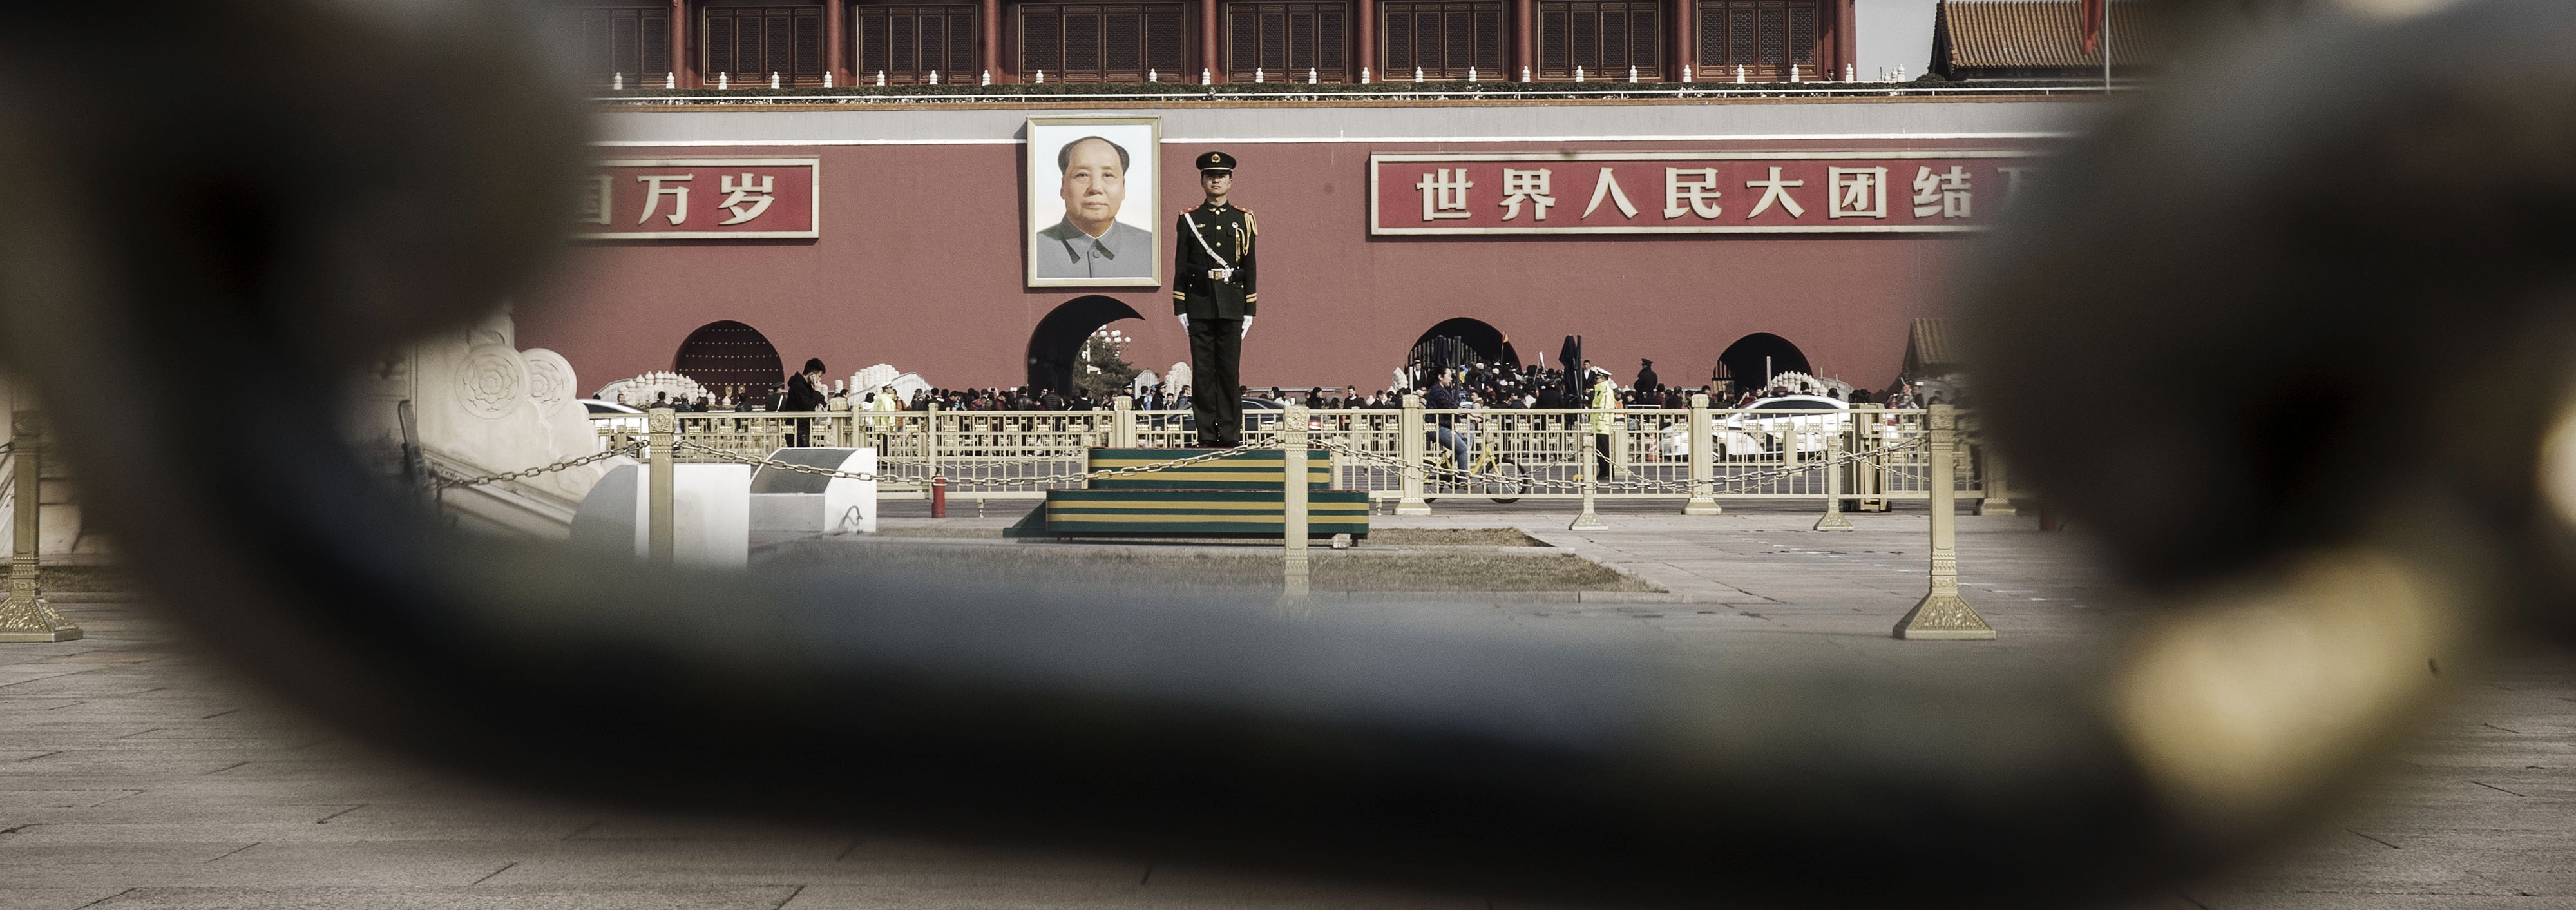 A member of the People's Armed Police in front of a portrait of former Chinese leader Mao Zedong at the Tiananmen Gate in Beijing (Photo: Qilai Shen/via Getty Images)